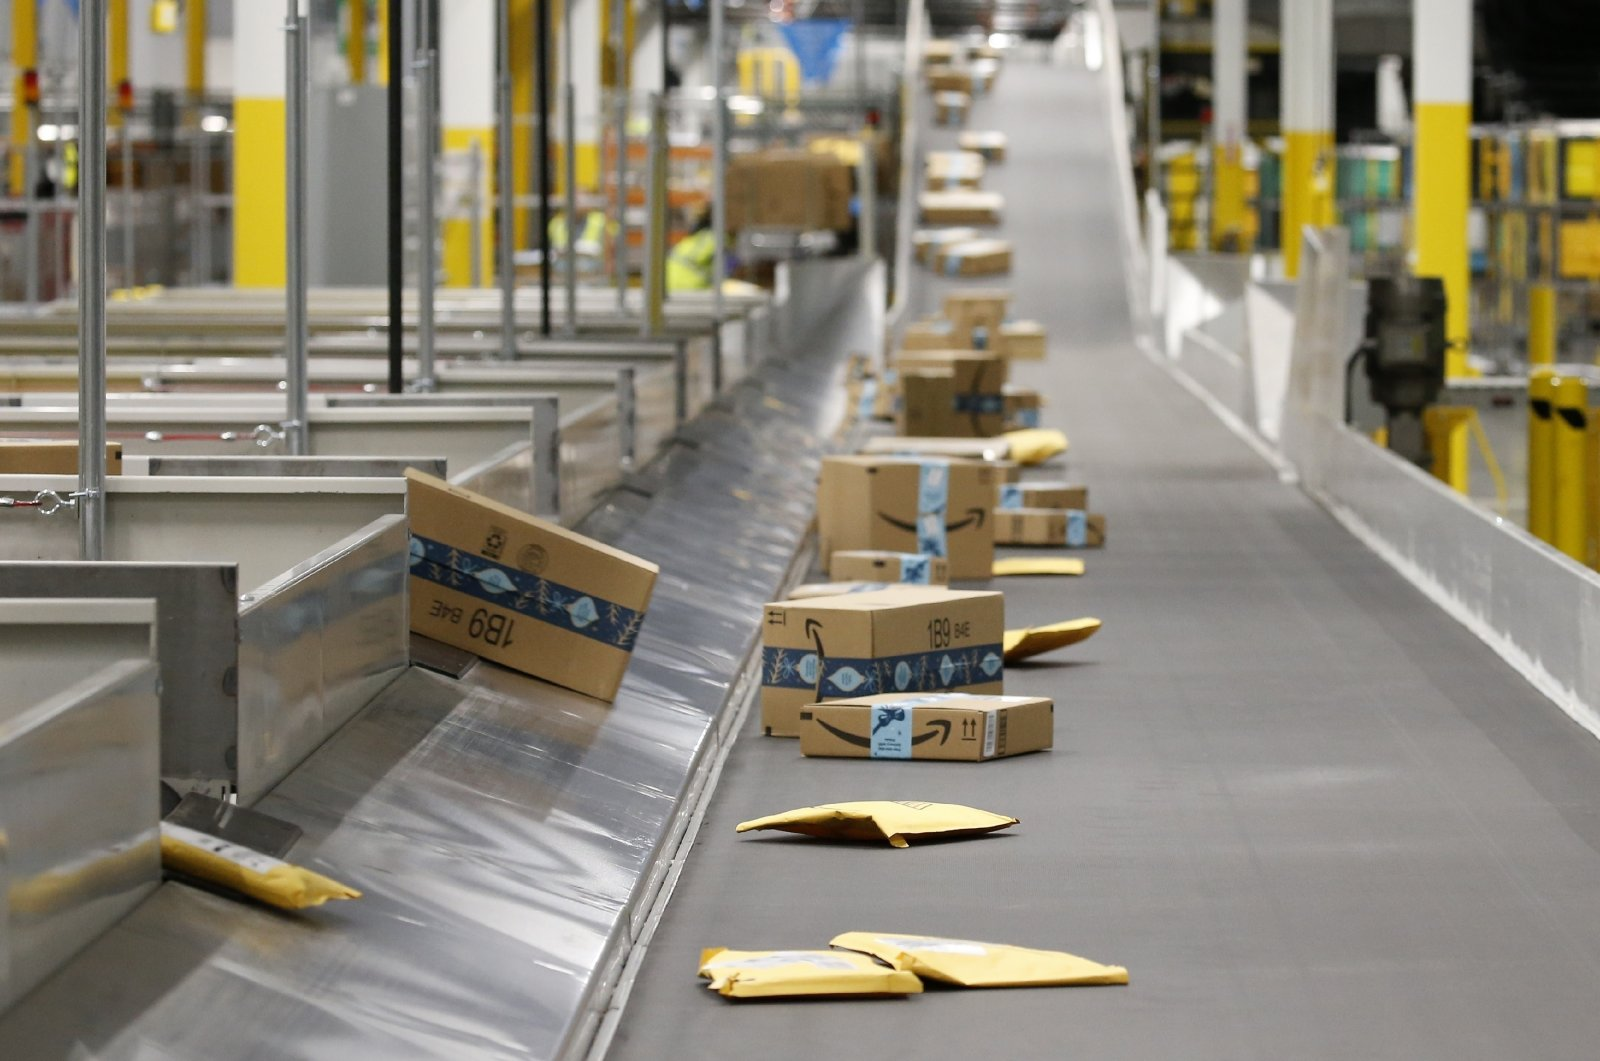 Amazon packages move along a conveyor at an Amazon warehouse facility in Goodyear, Arizona on Dec. 17, 2019. (AP Photo)